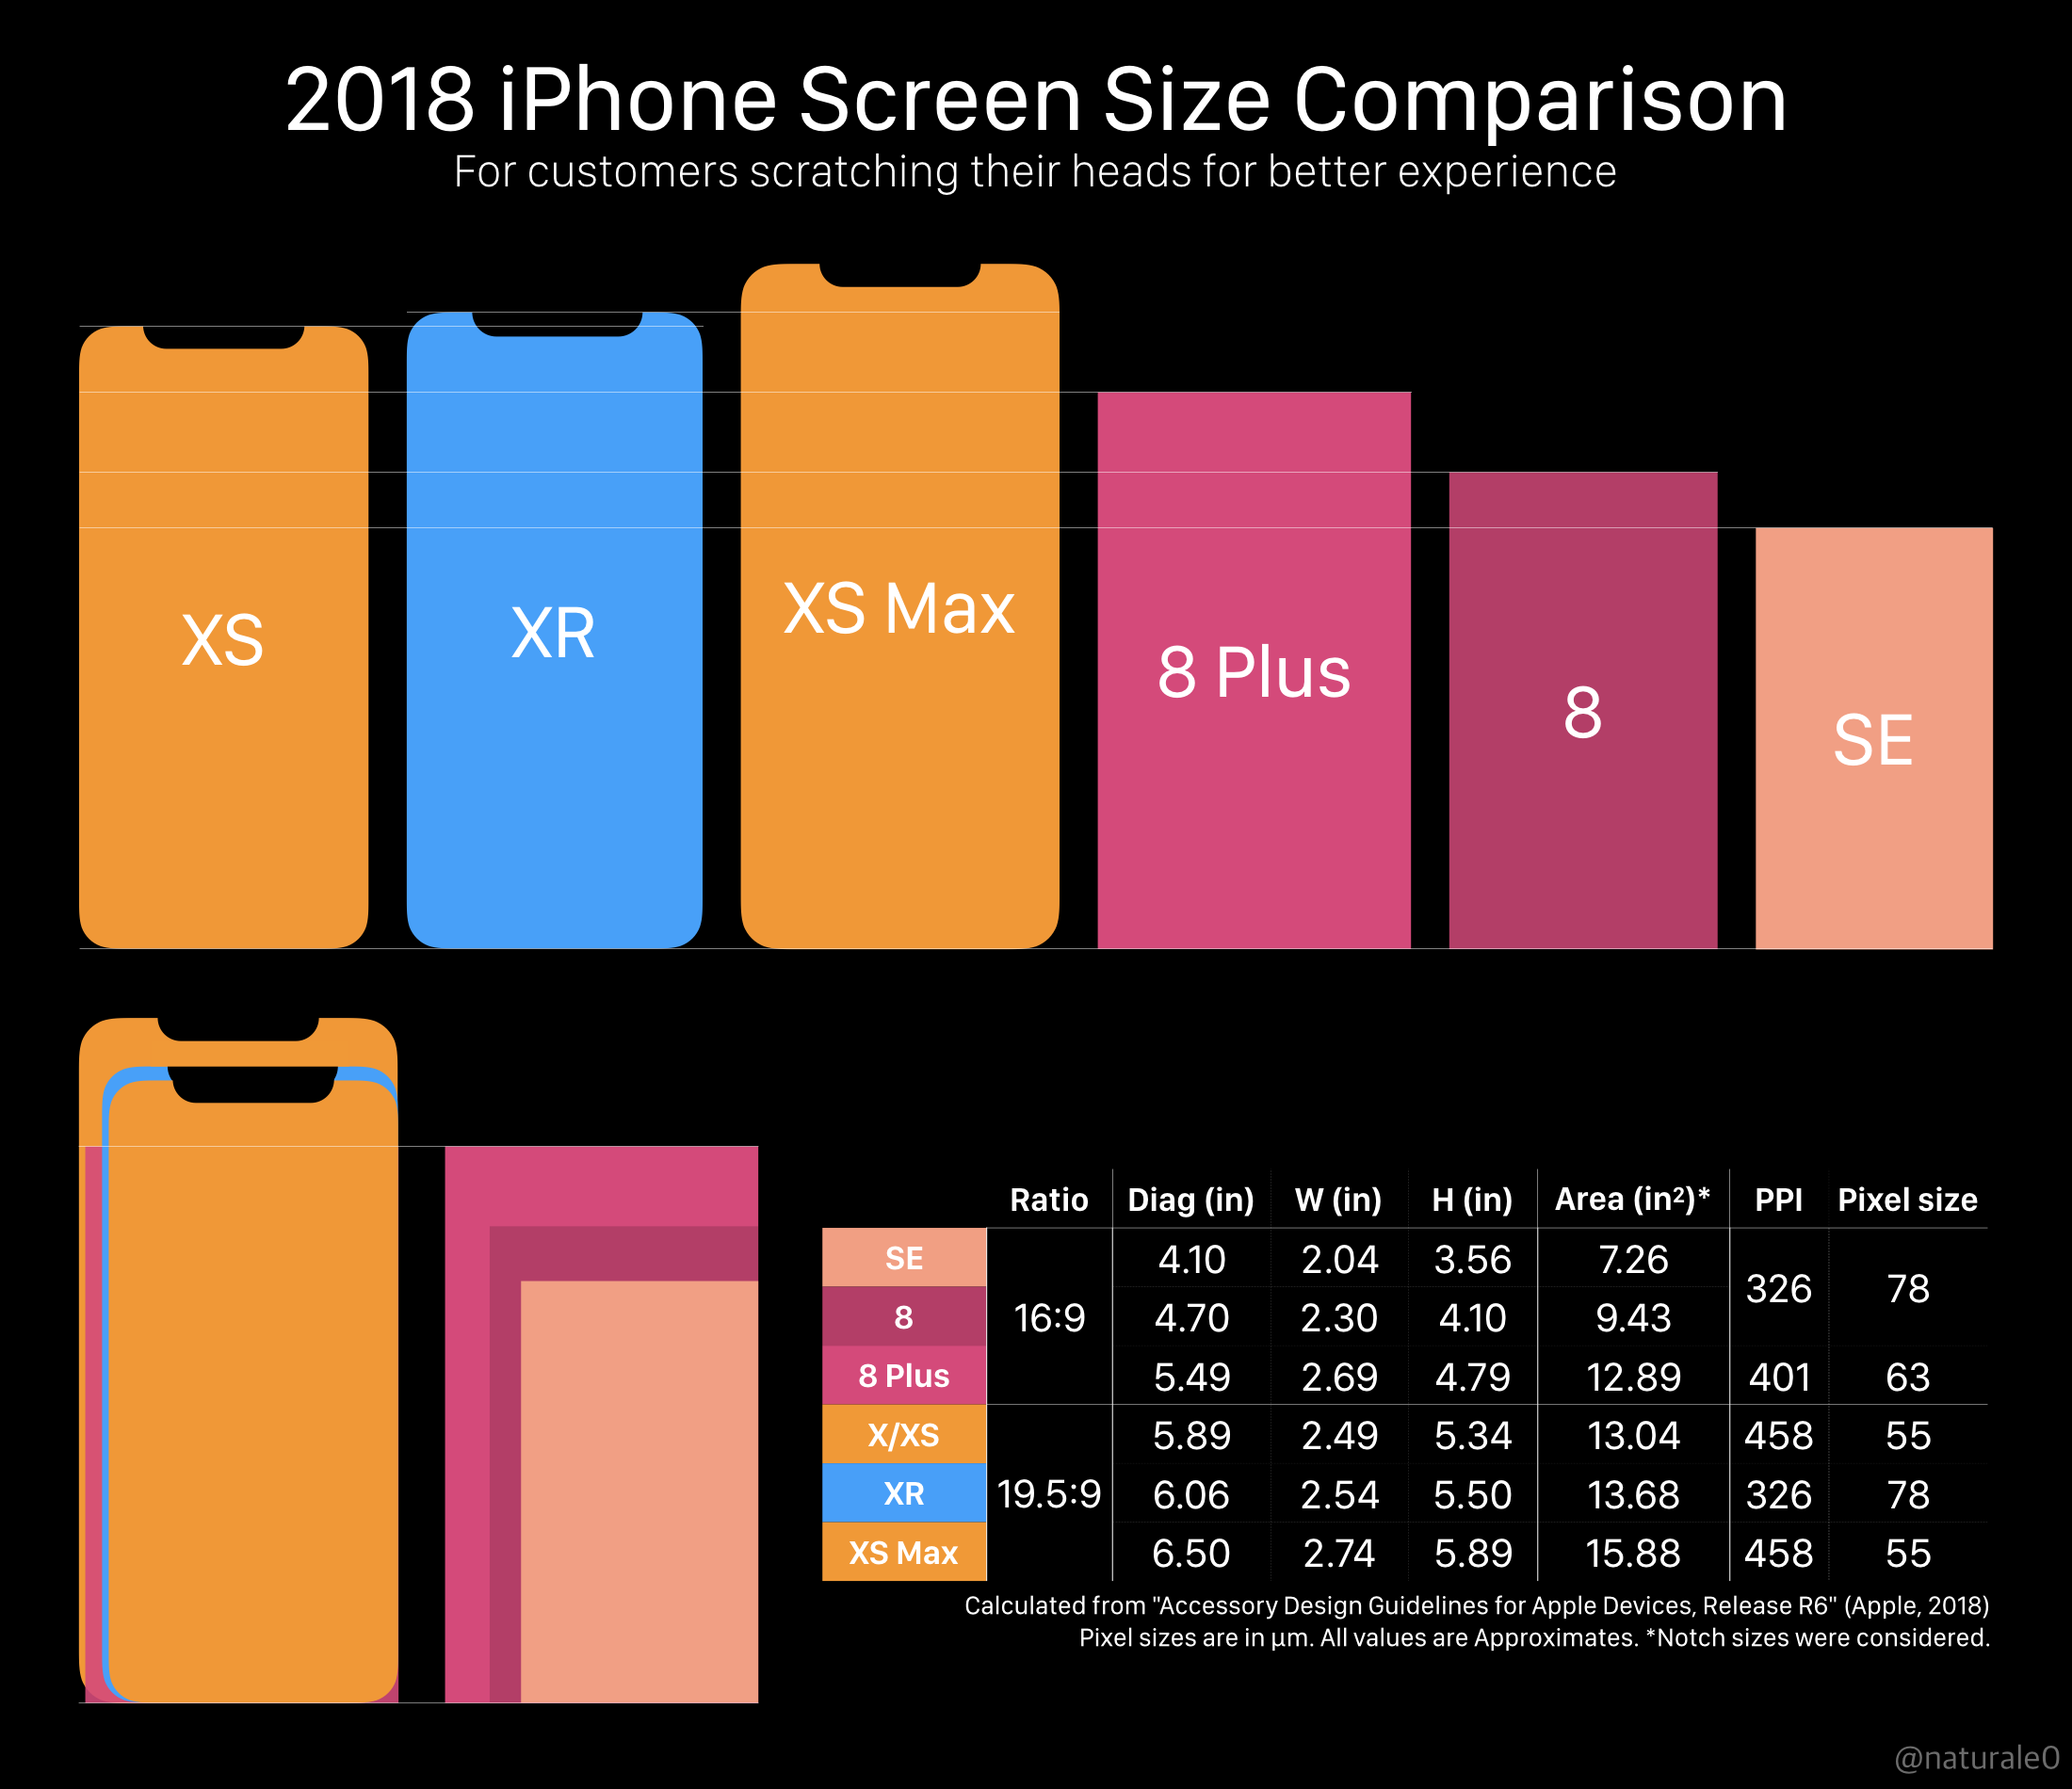 2018 Iphone Screen Size Comparison Updated With More Precise Metrics Amp More Models Https Ift Tt 2ybq Iphone Screen Size Iphone Screen Iphone Comparison